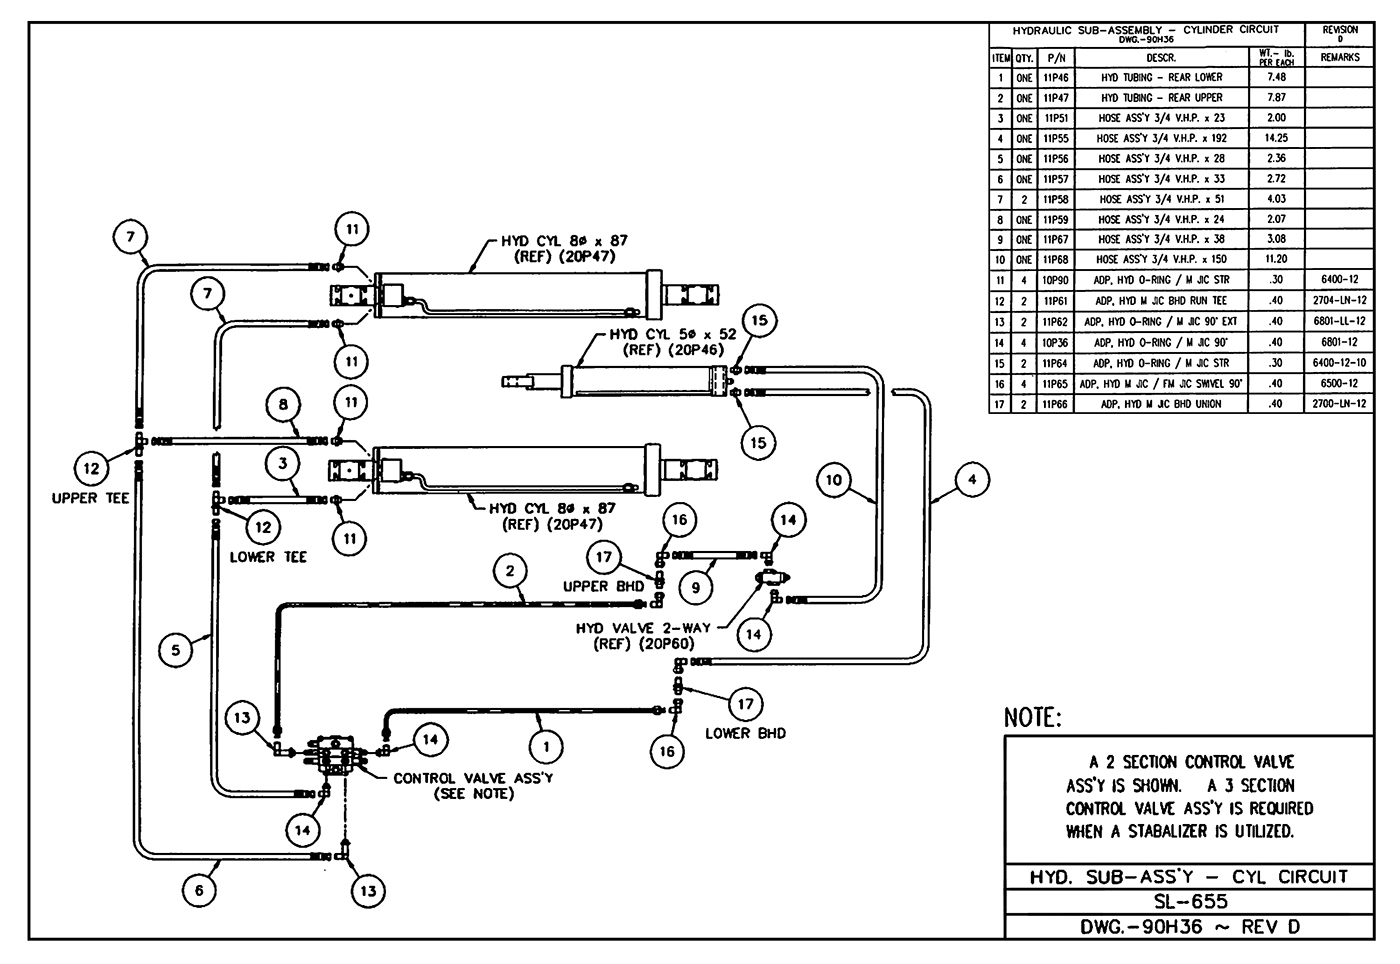 SL-655 Hydraulic Sub-Assembly (Cylinder Circuit) Diagram